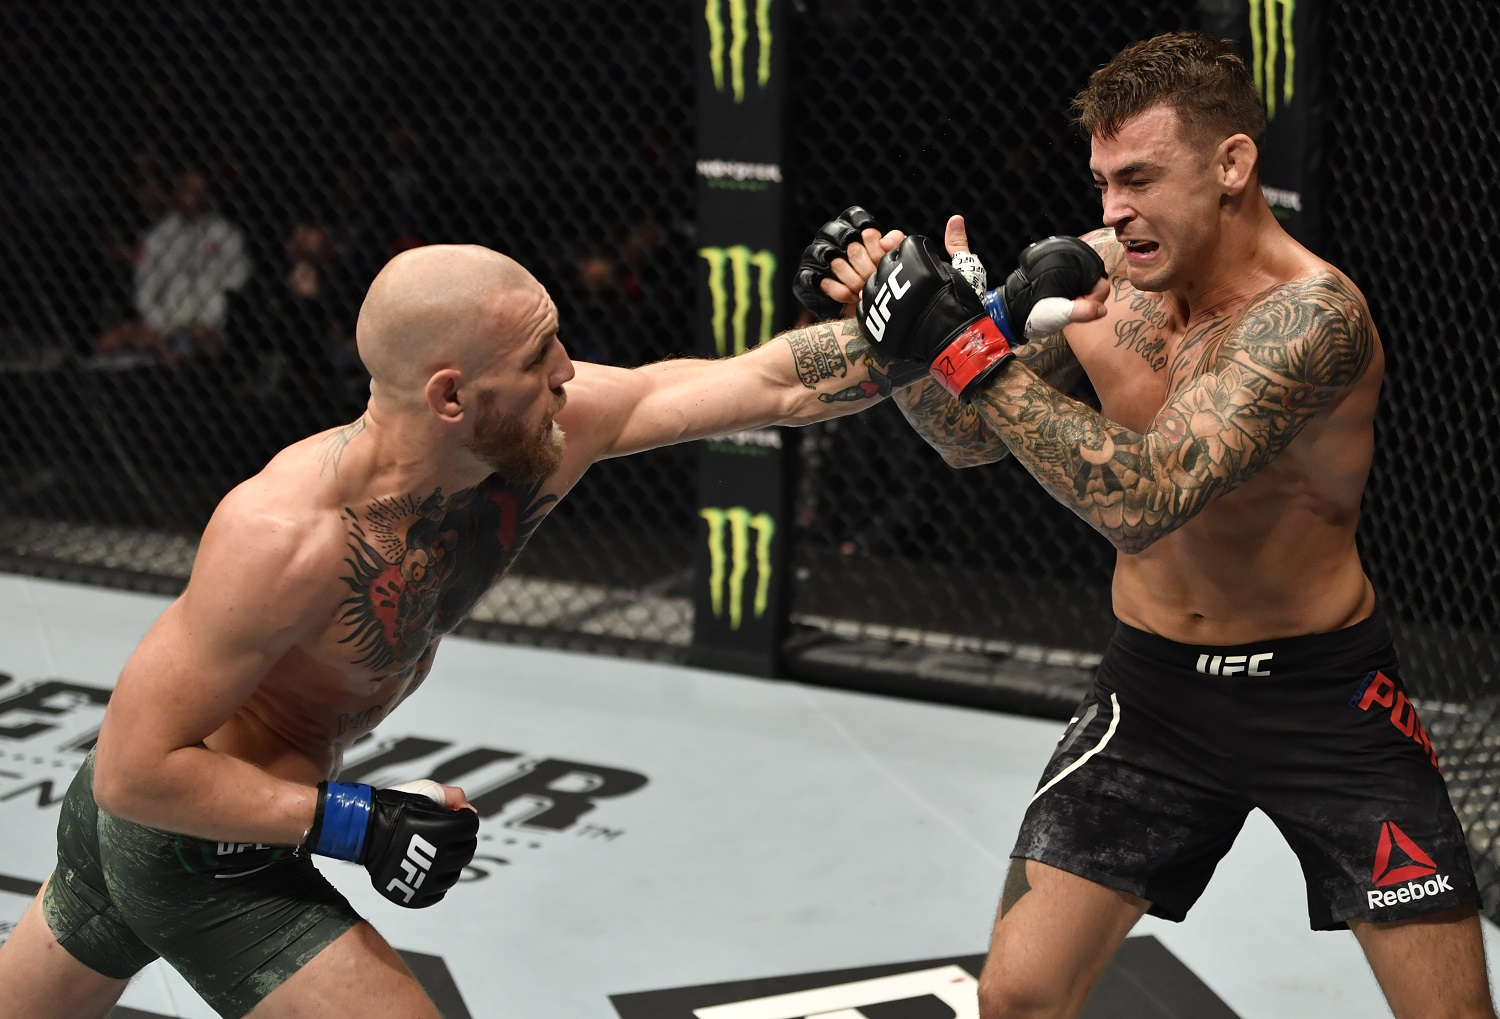 Conor McGregor and Dustin Poirier headlined UFC 257 in Abu Dhabi